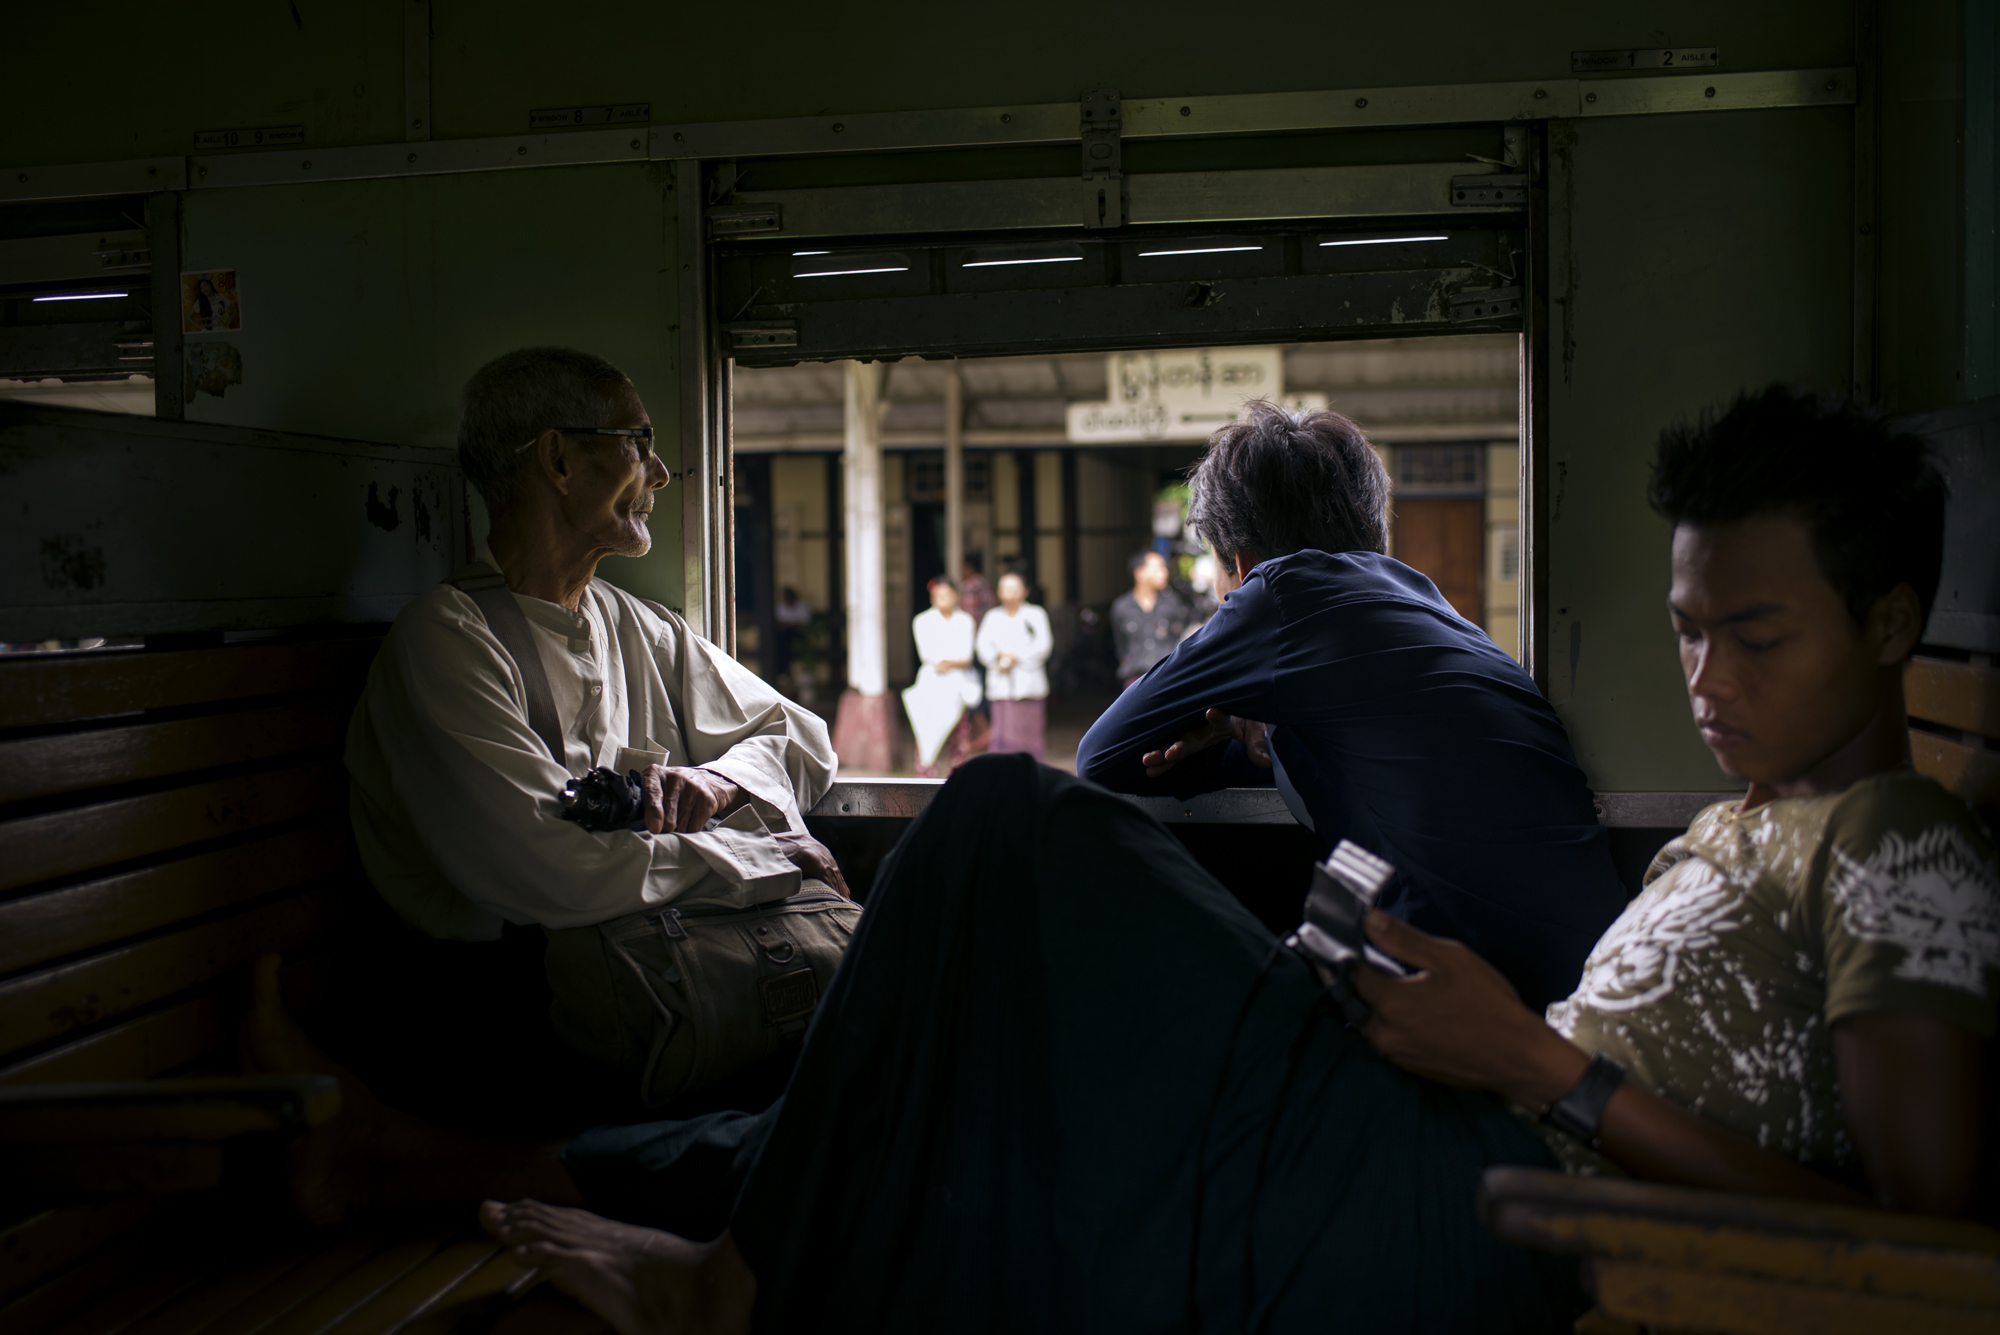 A family gets comfortable as the train departs Yangon on an the 18 hour journey up the country to Mandalay